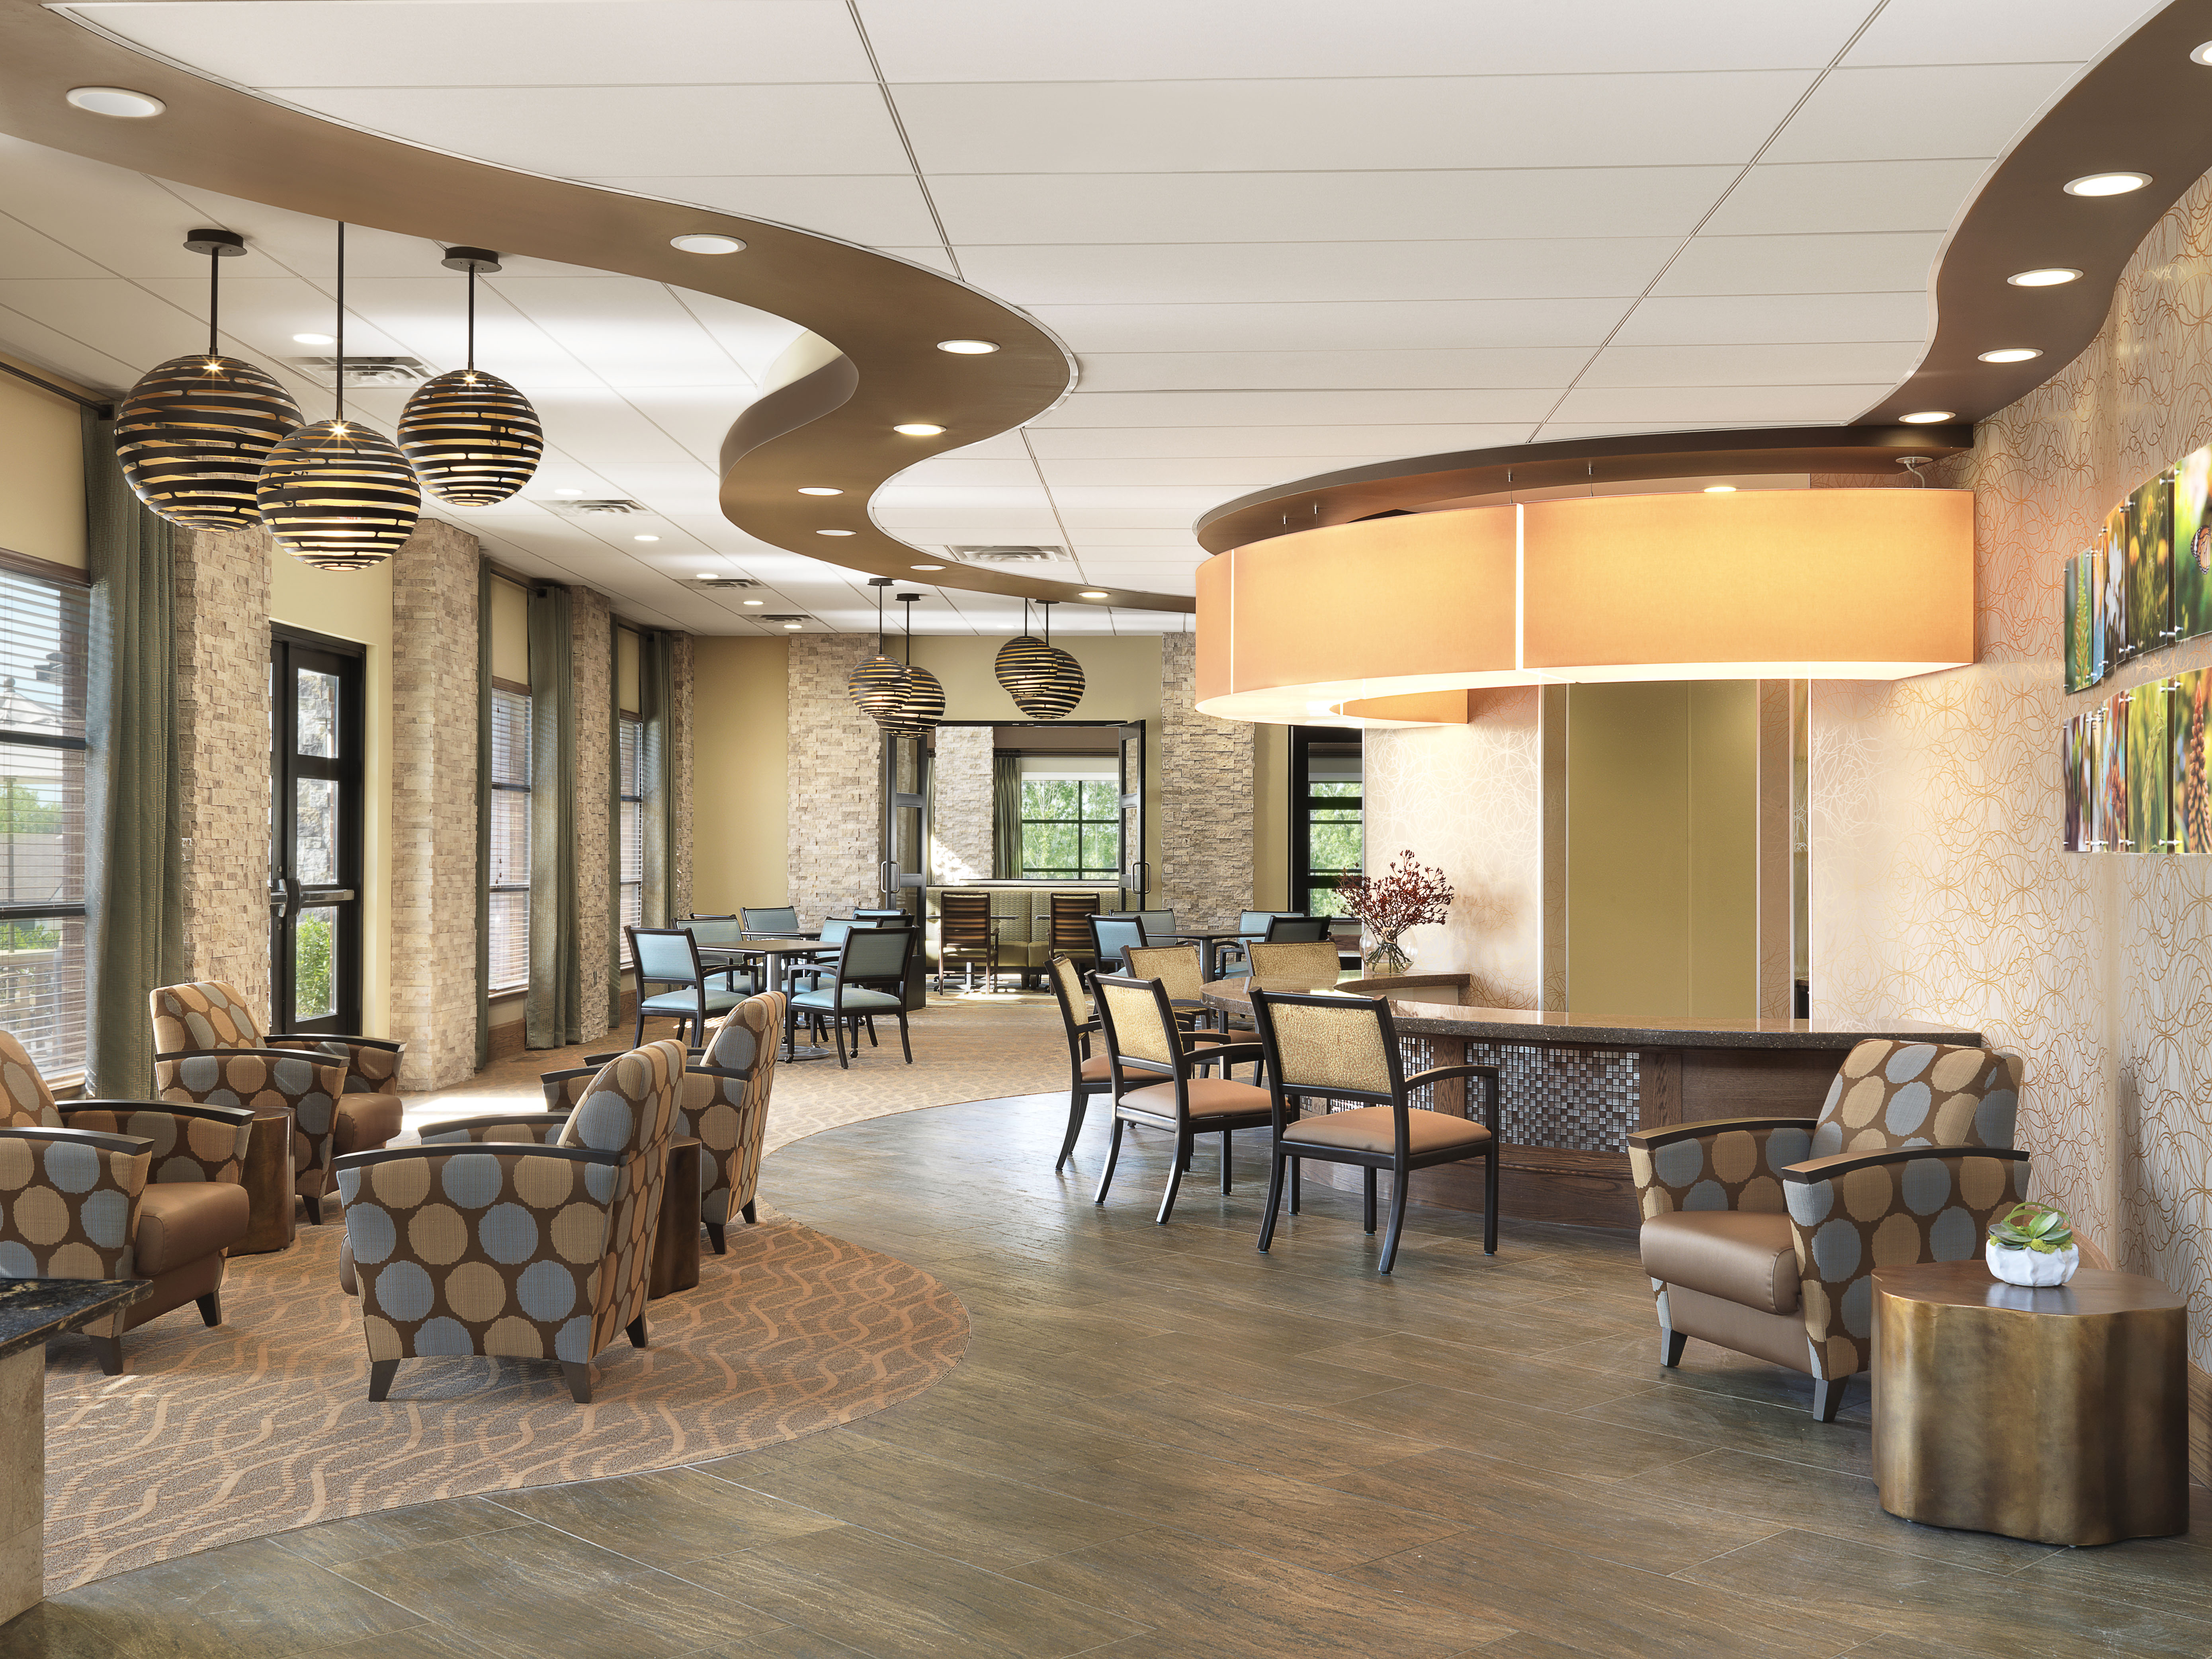 Senior Living Development Photo Gallery Lcs